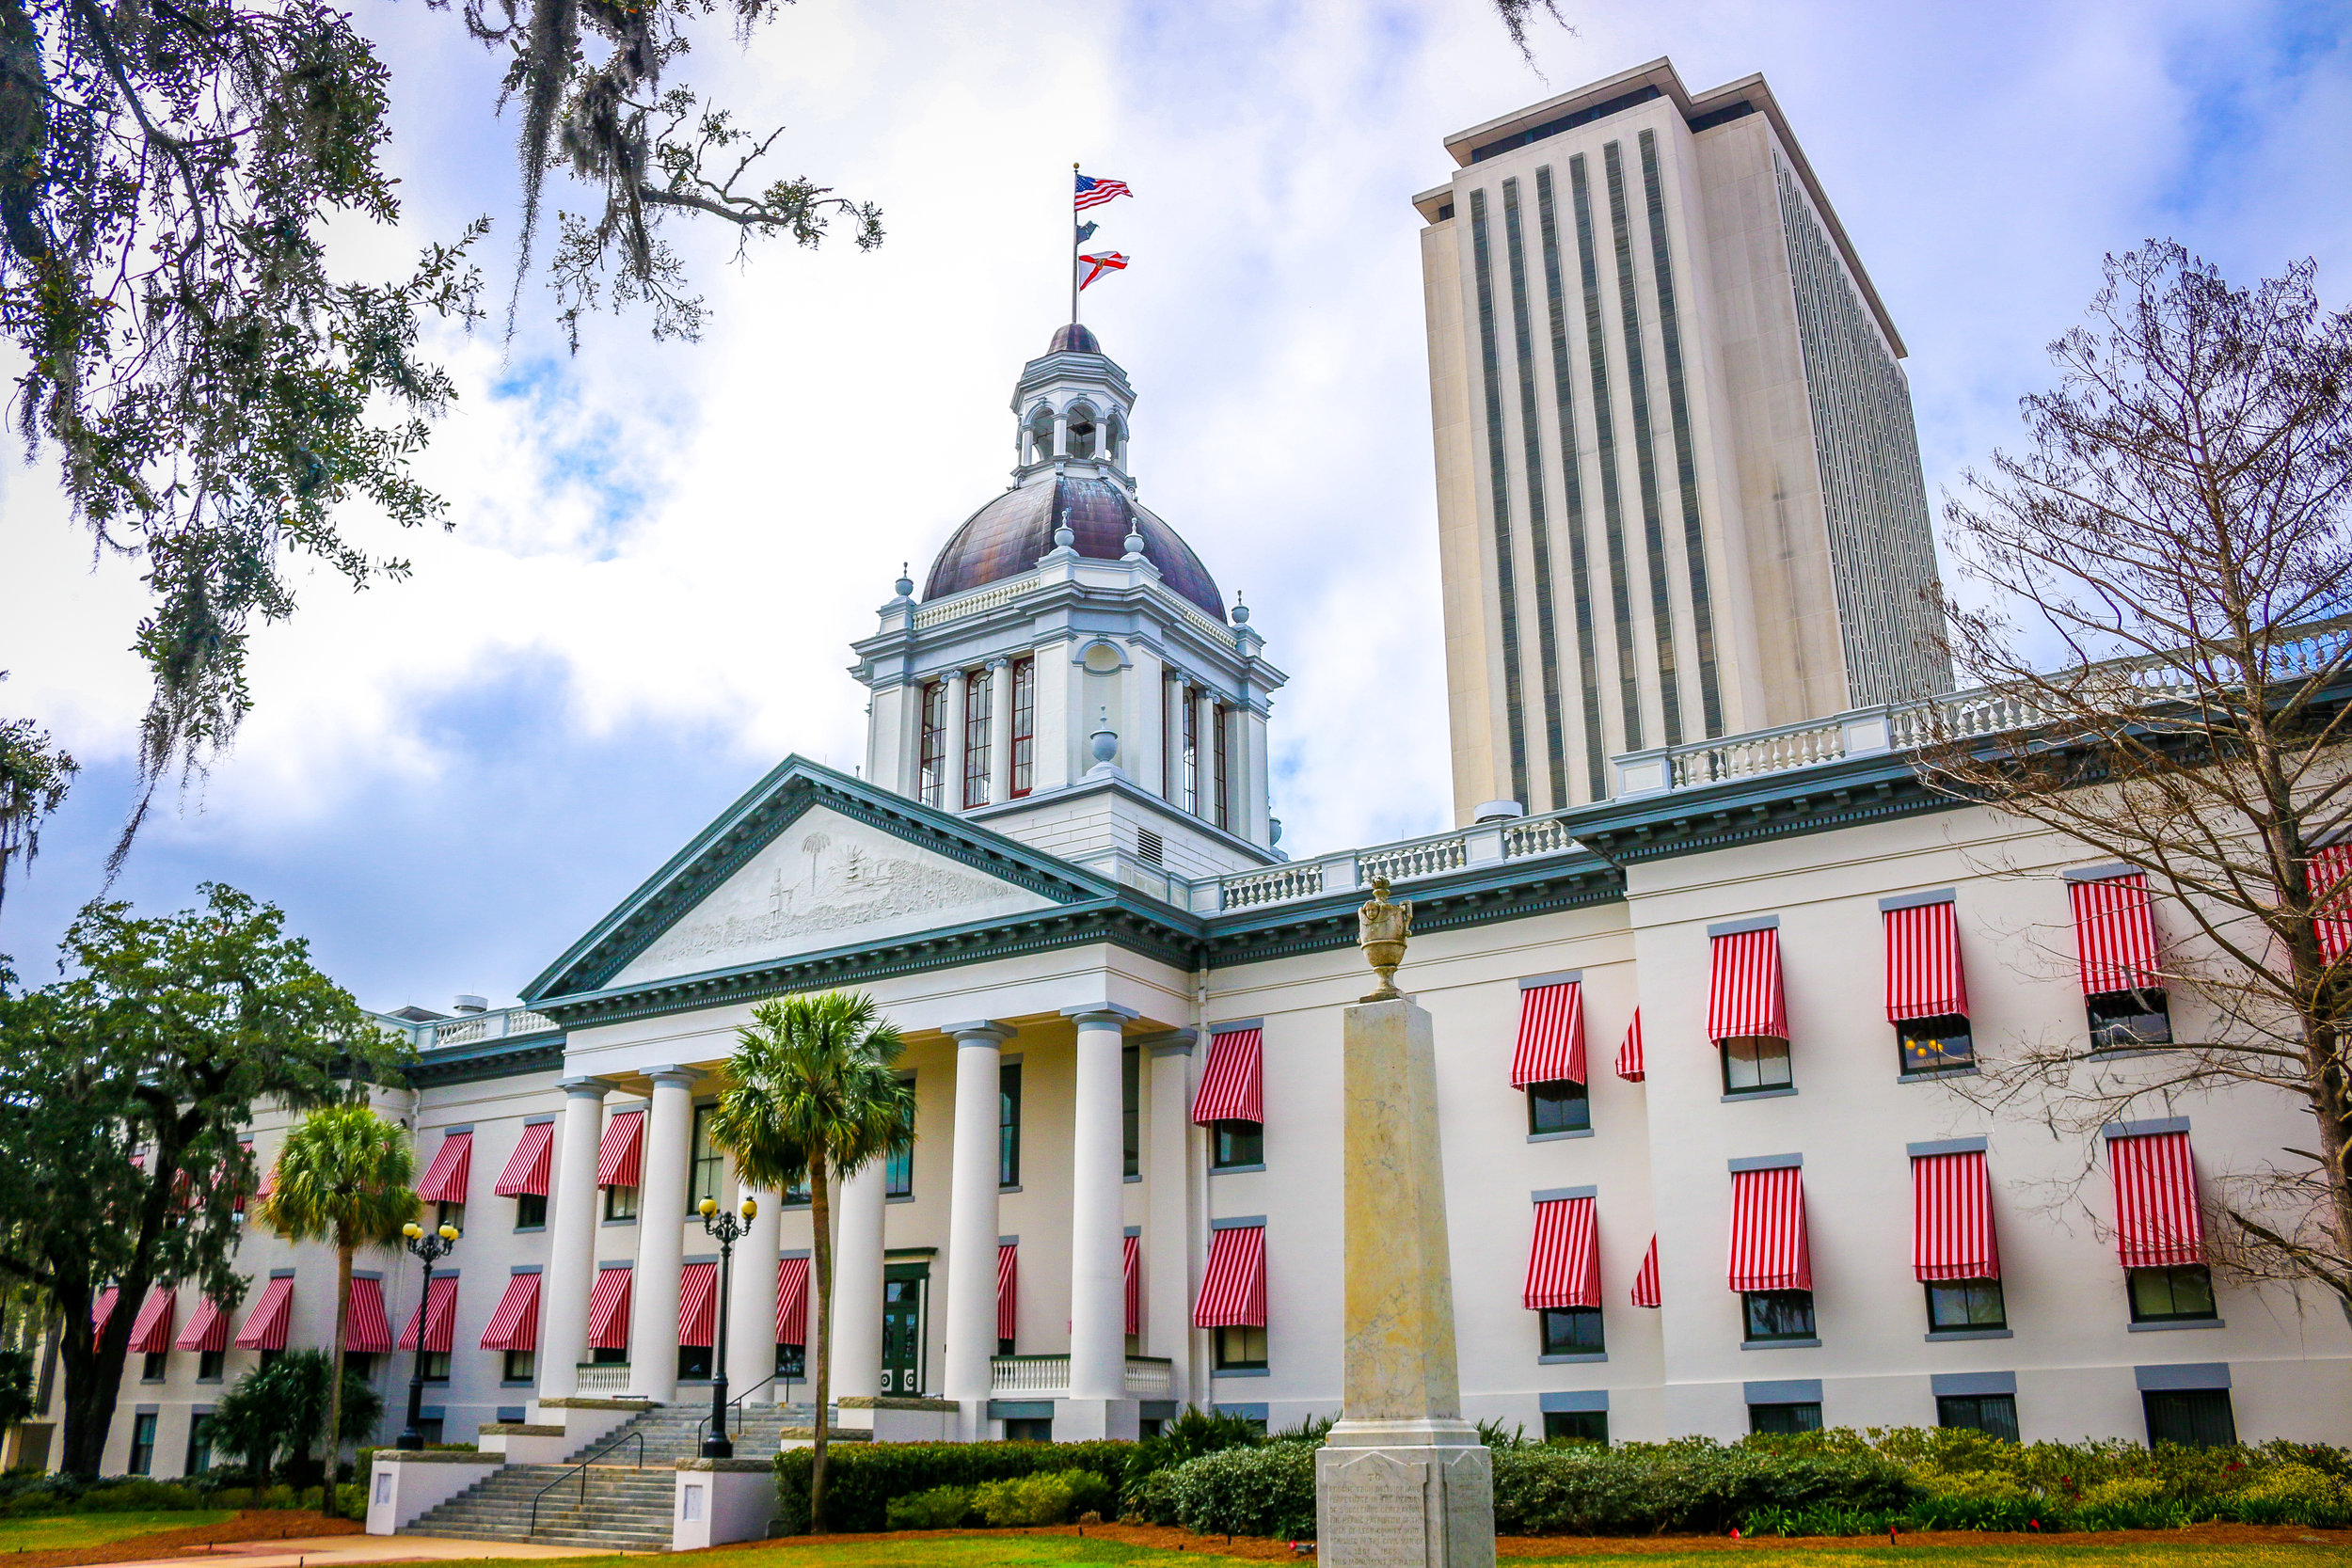 The Old State Capitol in Front of the New State Capitol